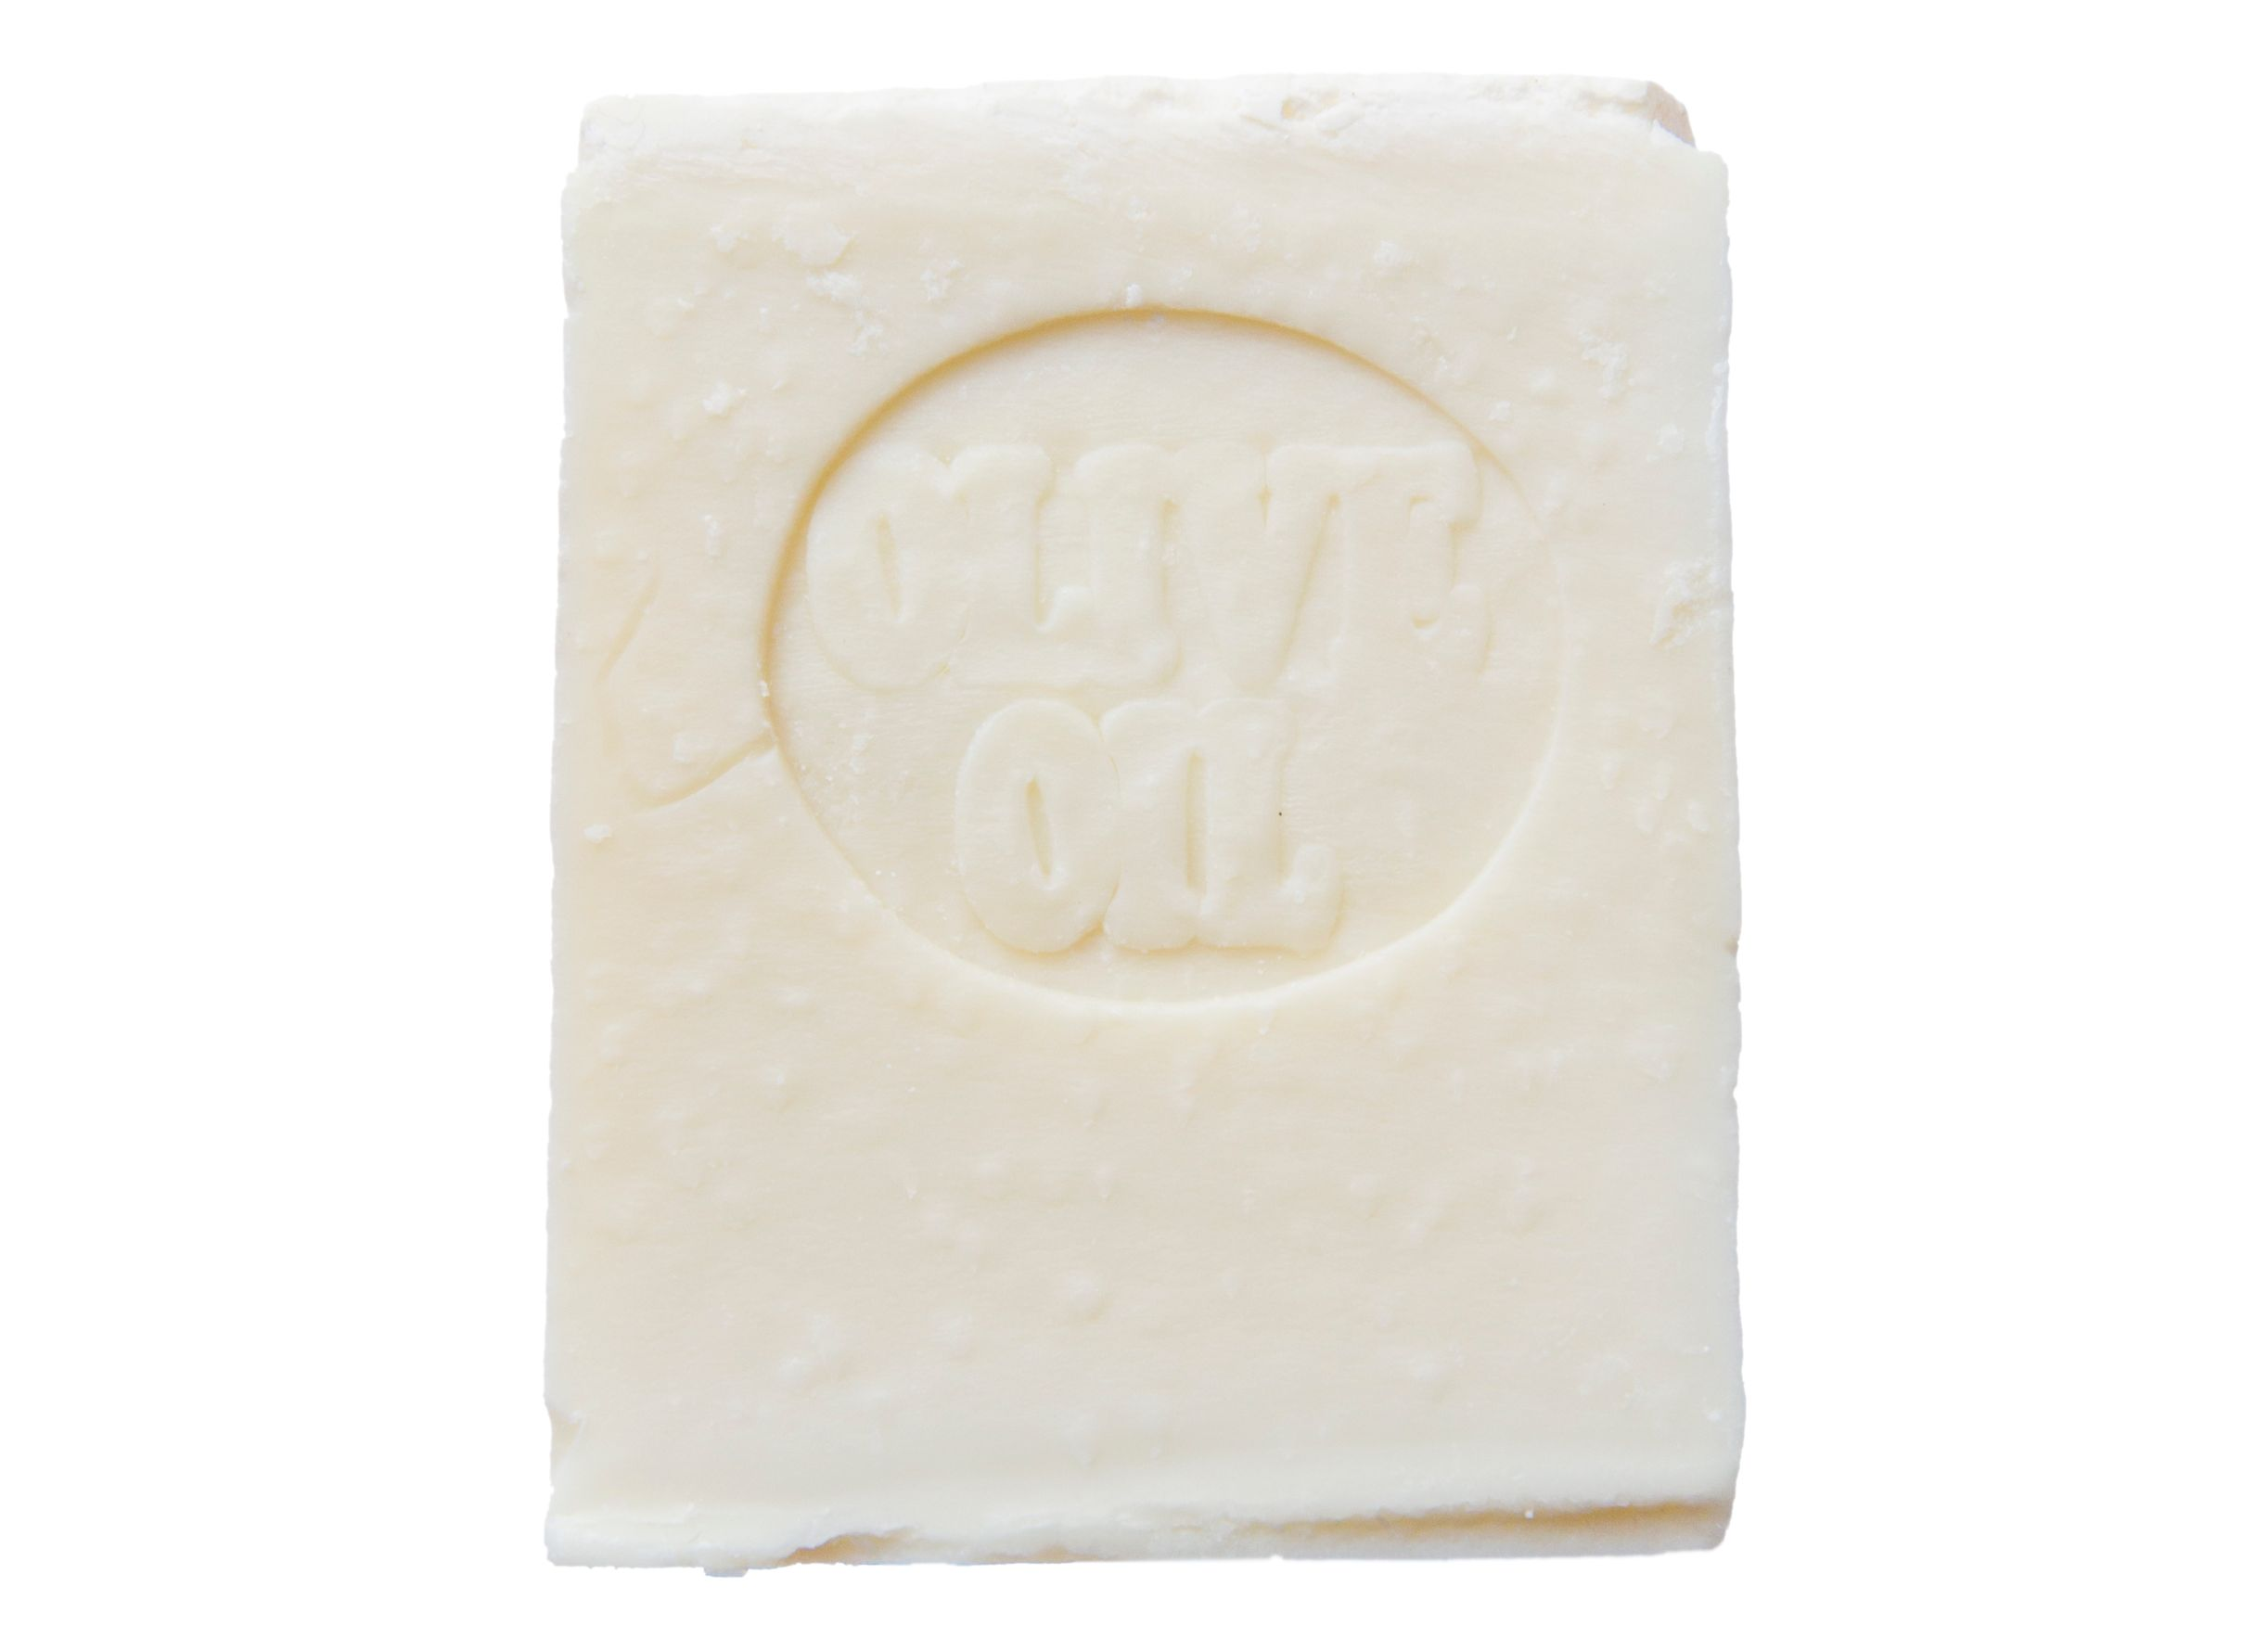 100% pure boxed olive oil soap